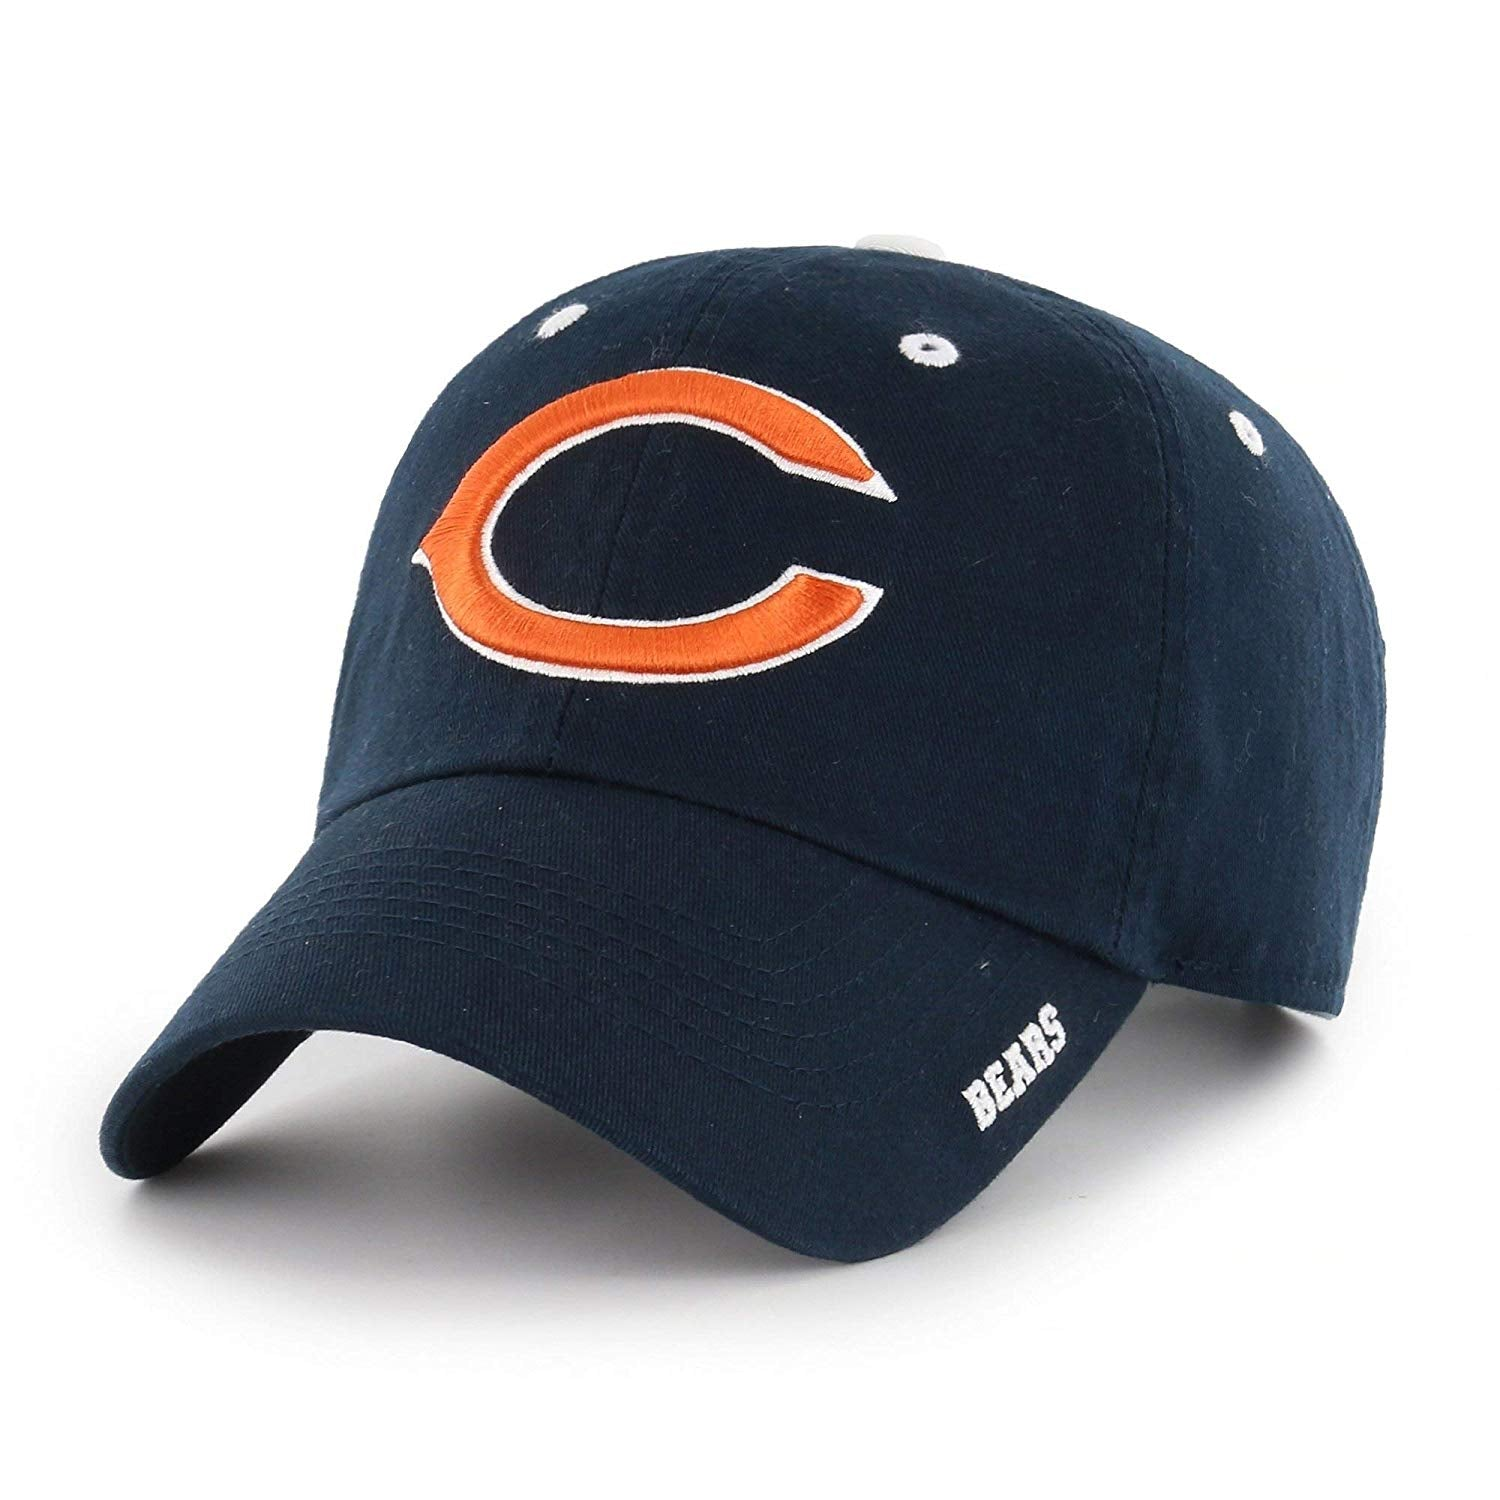 Blue NFL Chicago Bears Hat Sports Football Baseball Cap Embroidered Team Logo Athletic Games Adjustable Cap/Hat Boys Kids Unisex Fan Gift Stylish